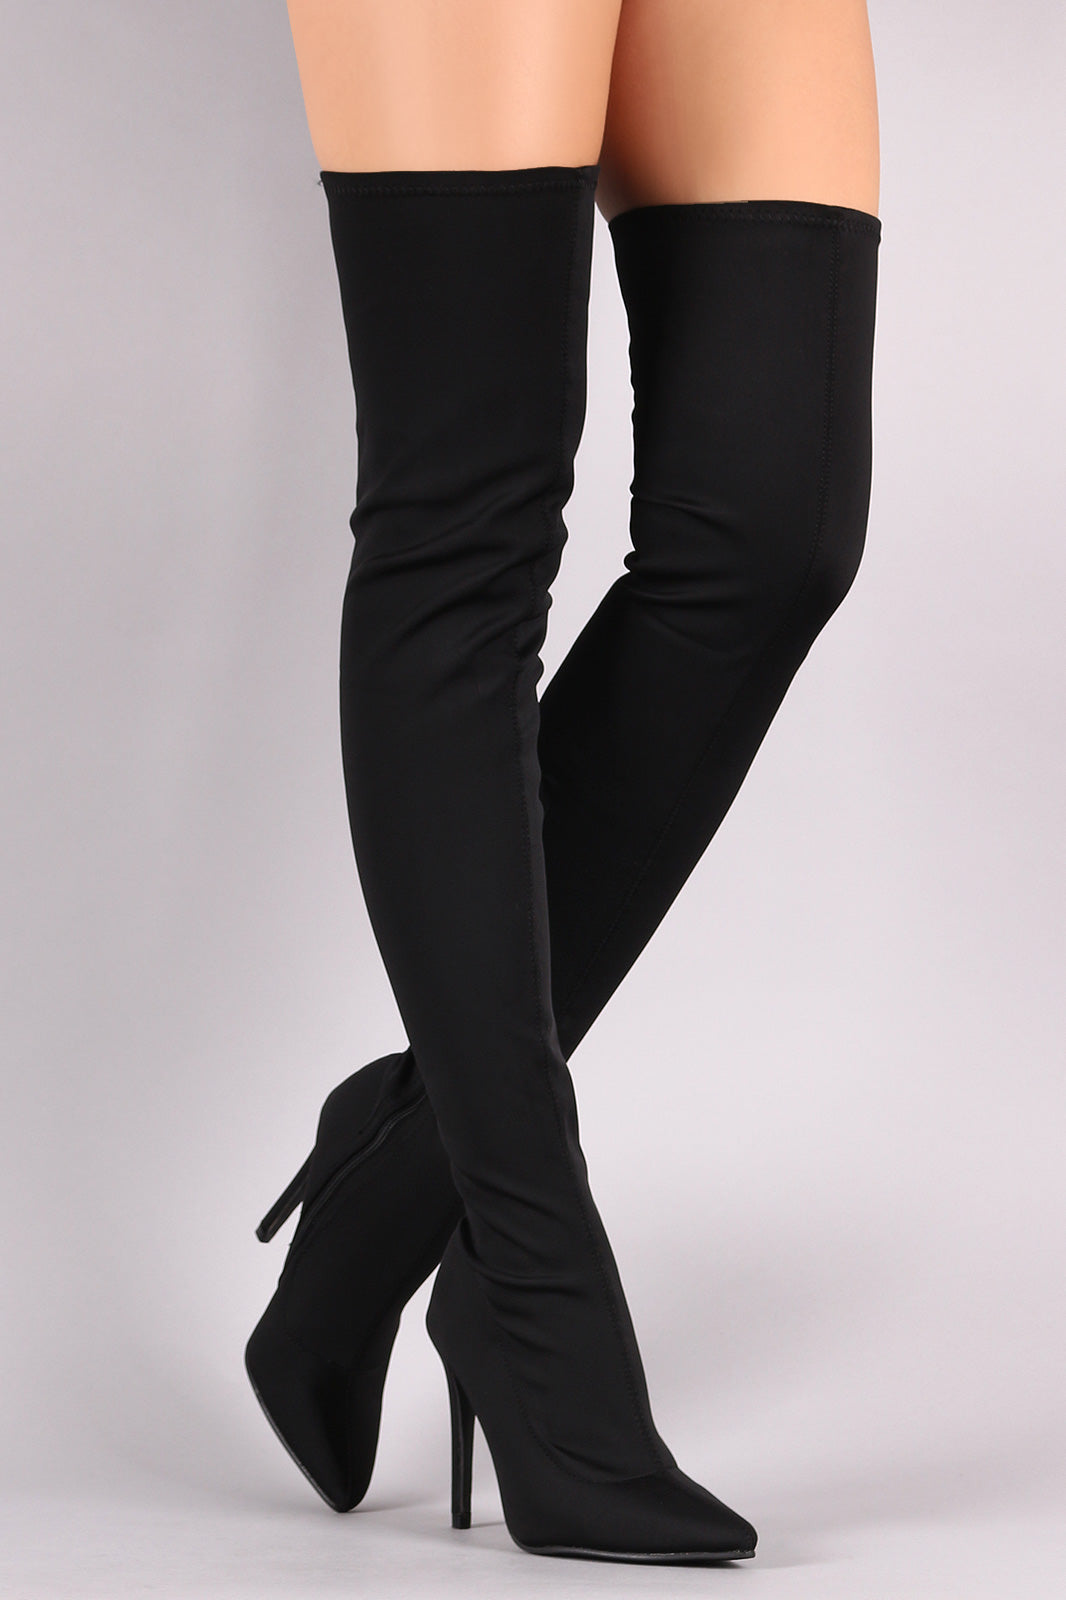 641126e68 Fashion Cities Pointy Toe Over The Knee Stiletto Boots